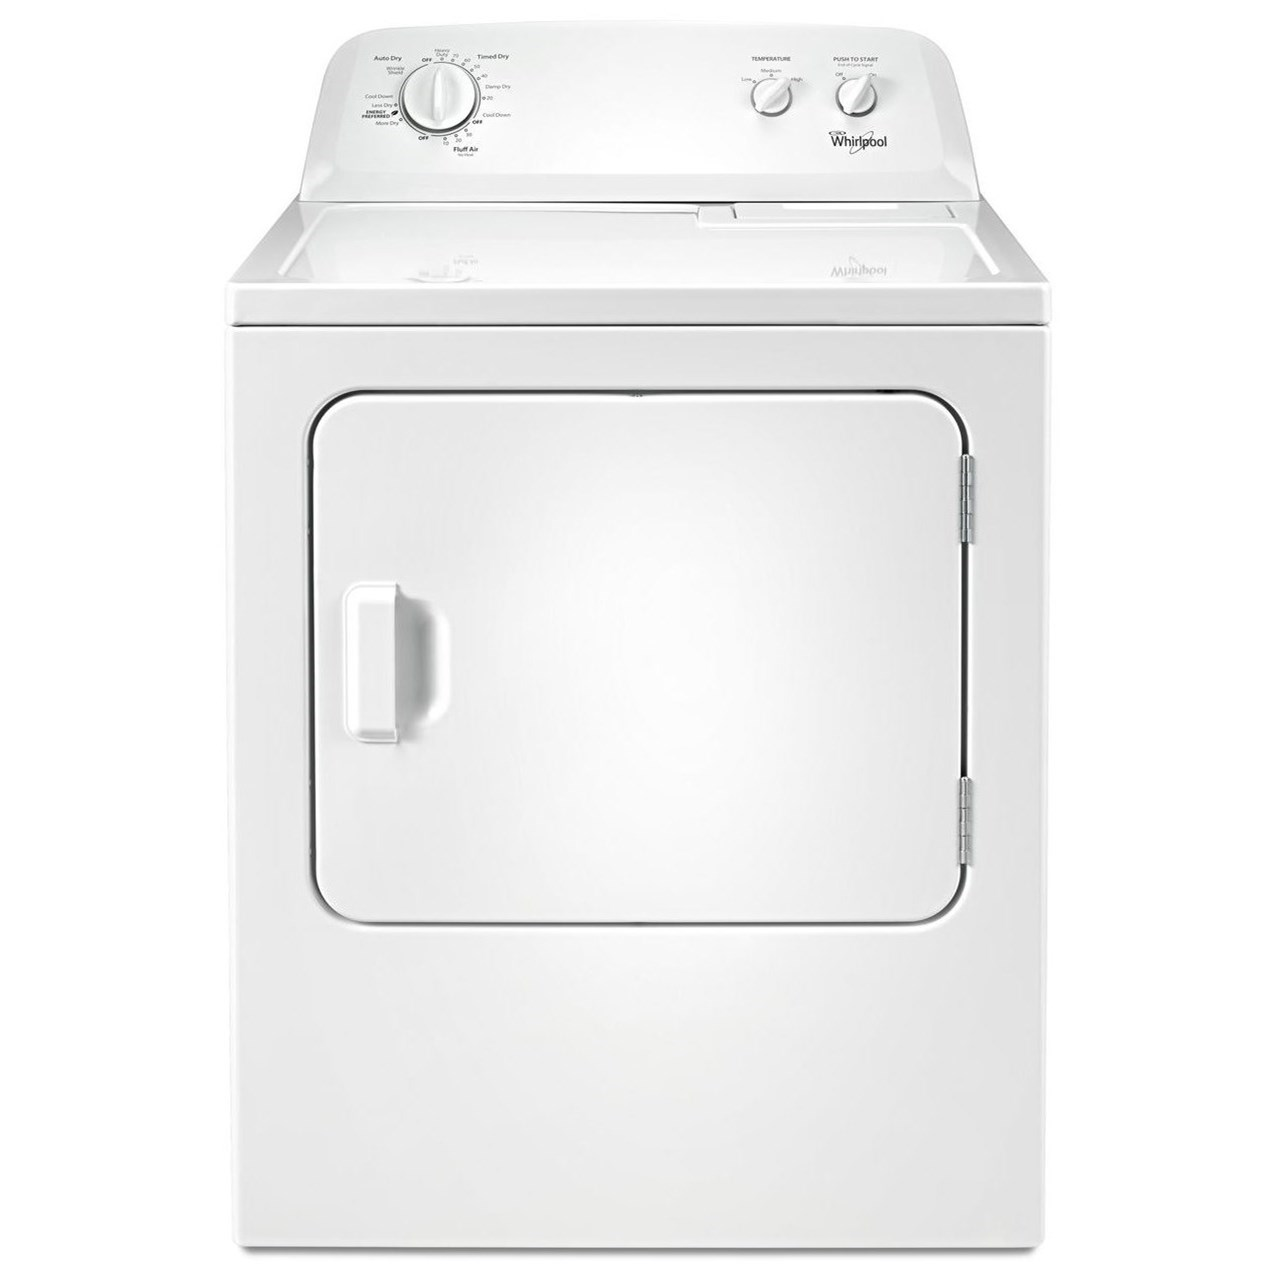 Whirlpool Electric Front Load Dryers 7.0 cu. ft. Top Load Paired Dryer - Item Number: WED4616FW